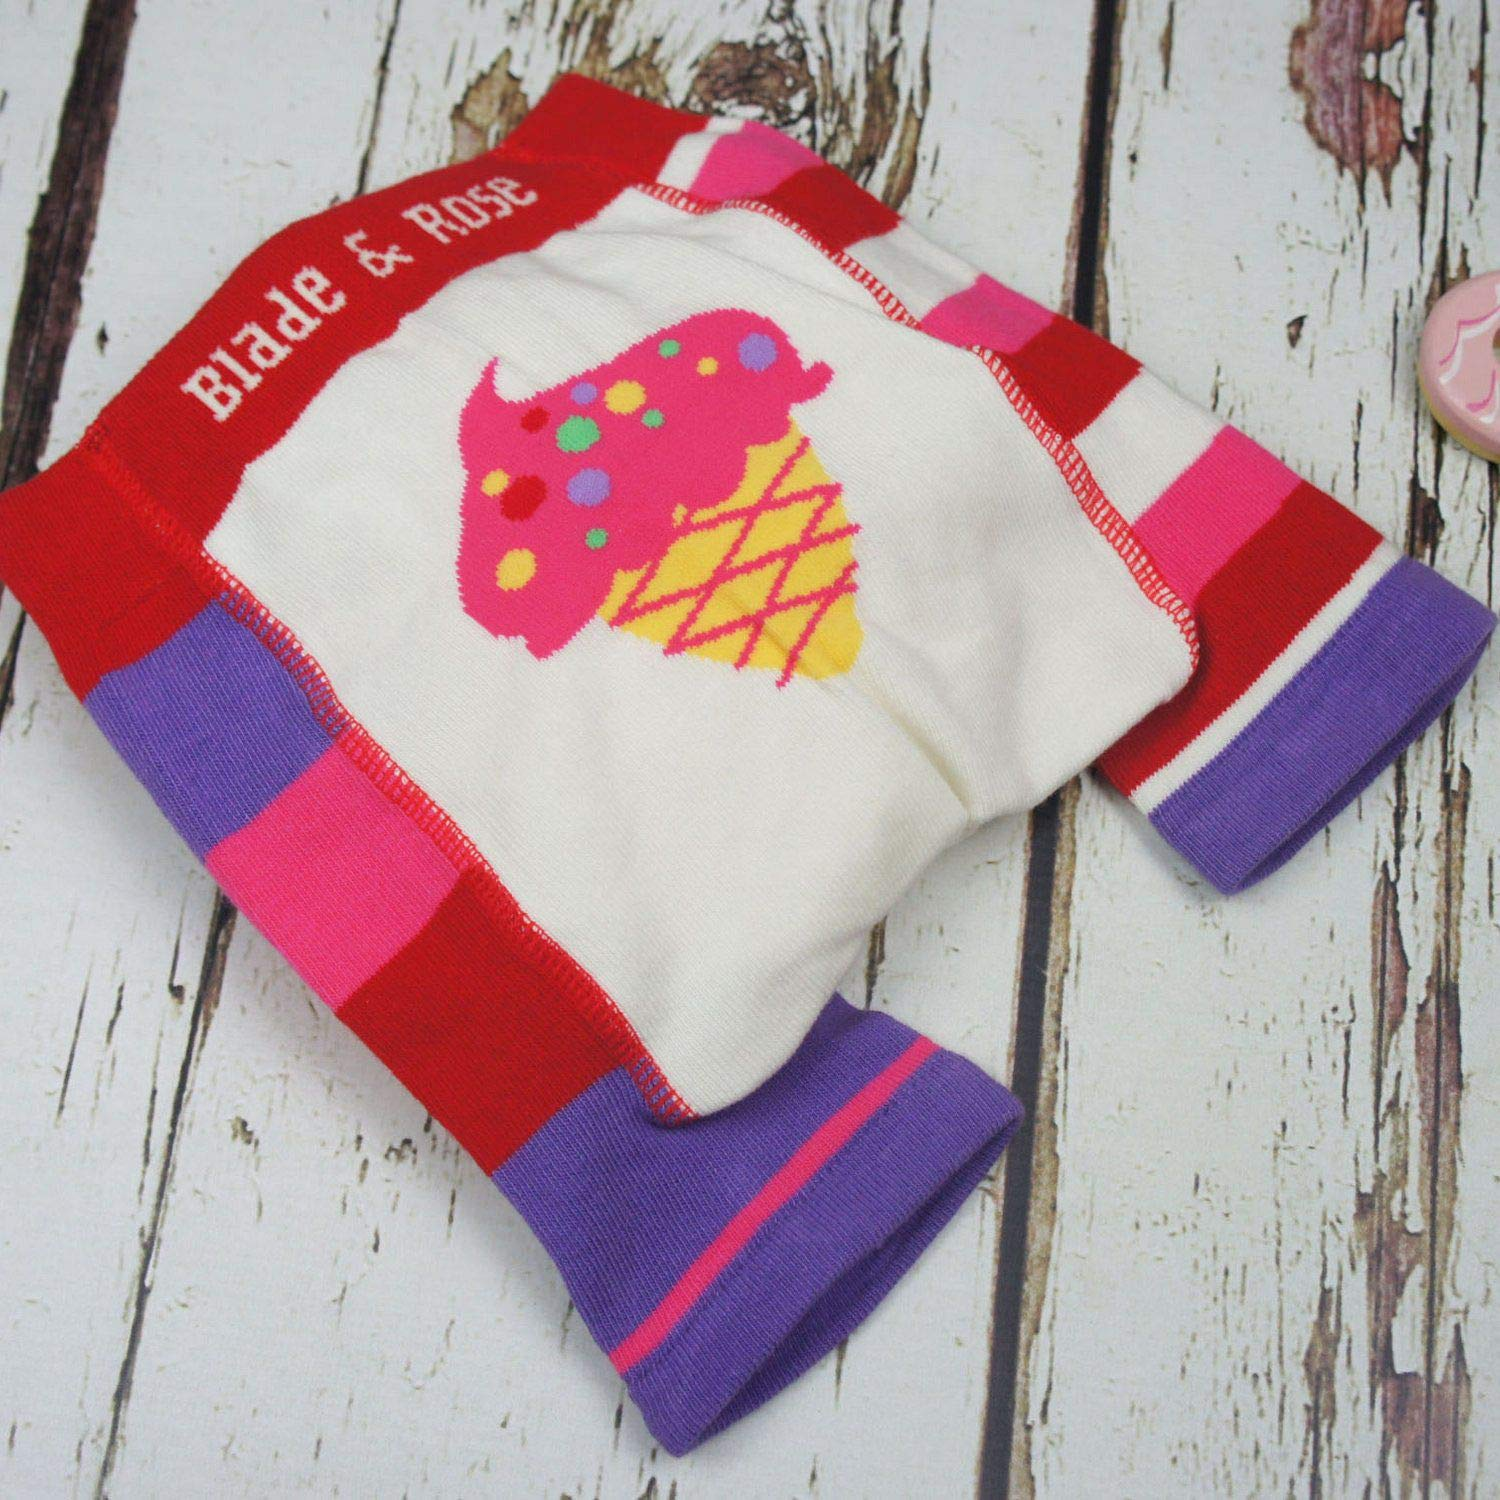 Blade and Rose 20410 Ice Cream Summer Shorts 06-12 Months